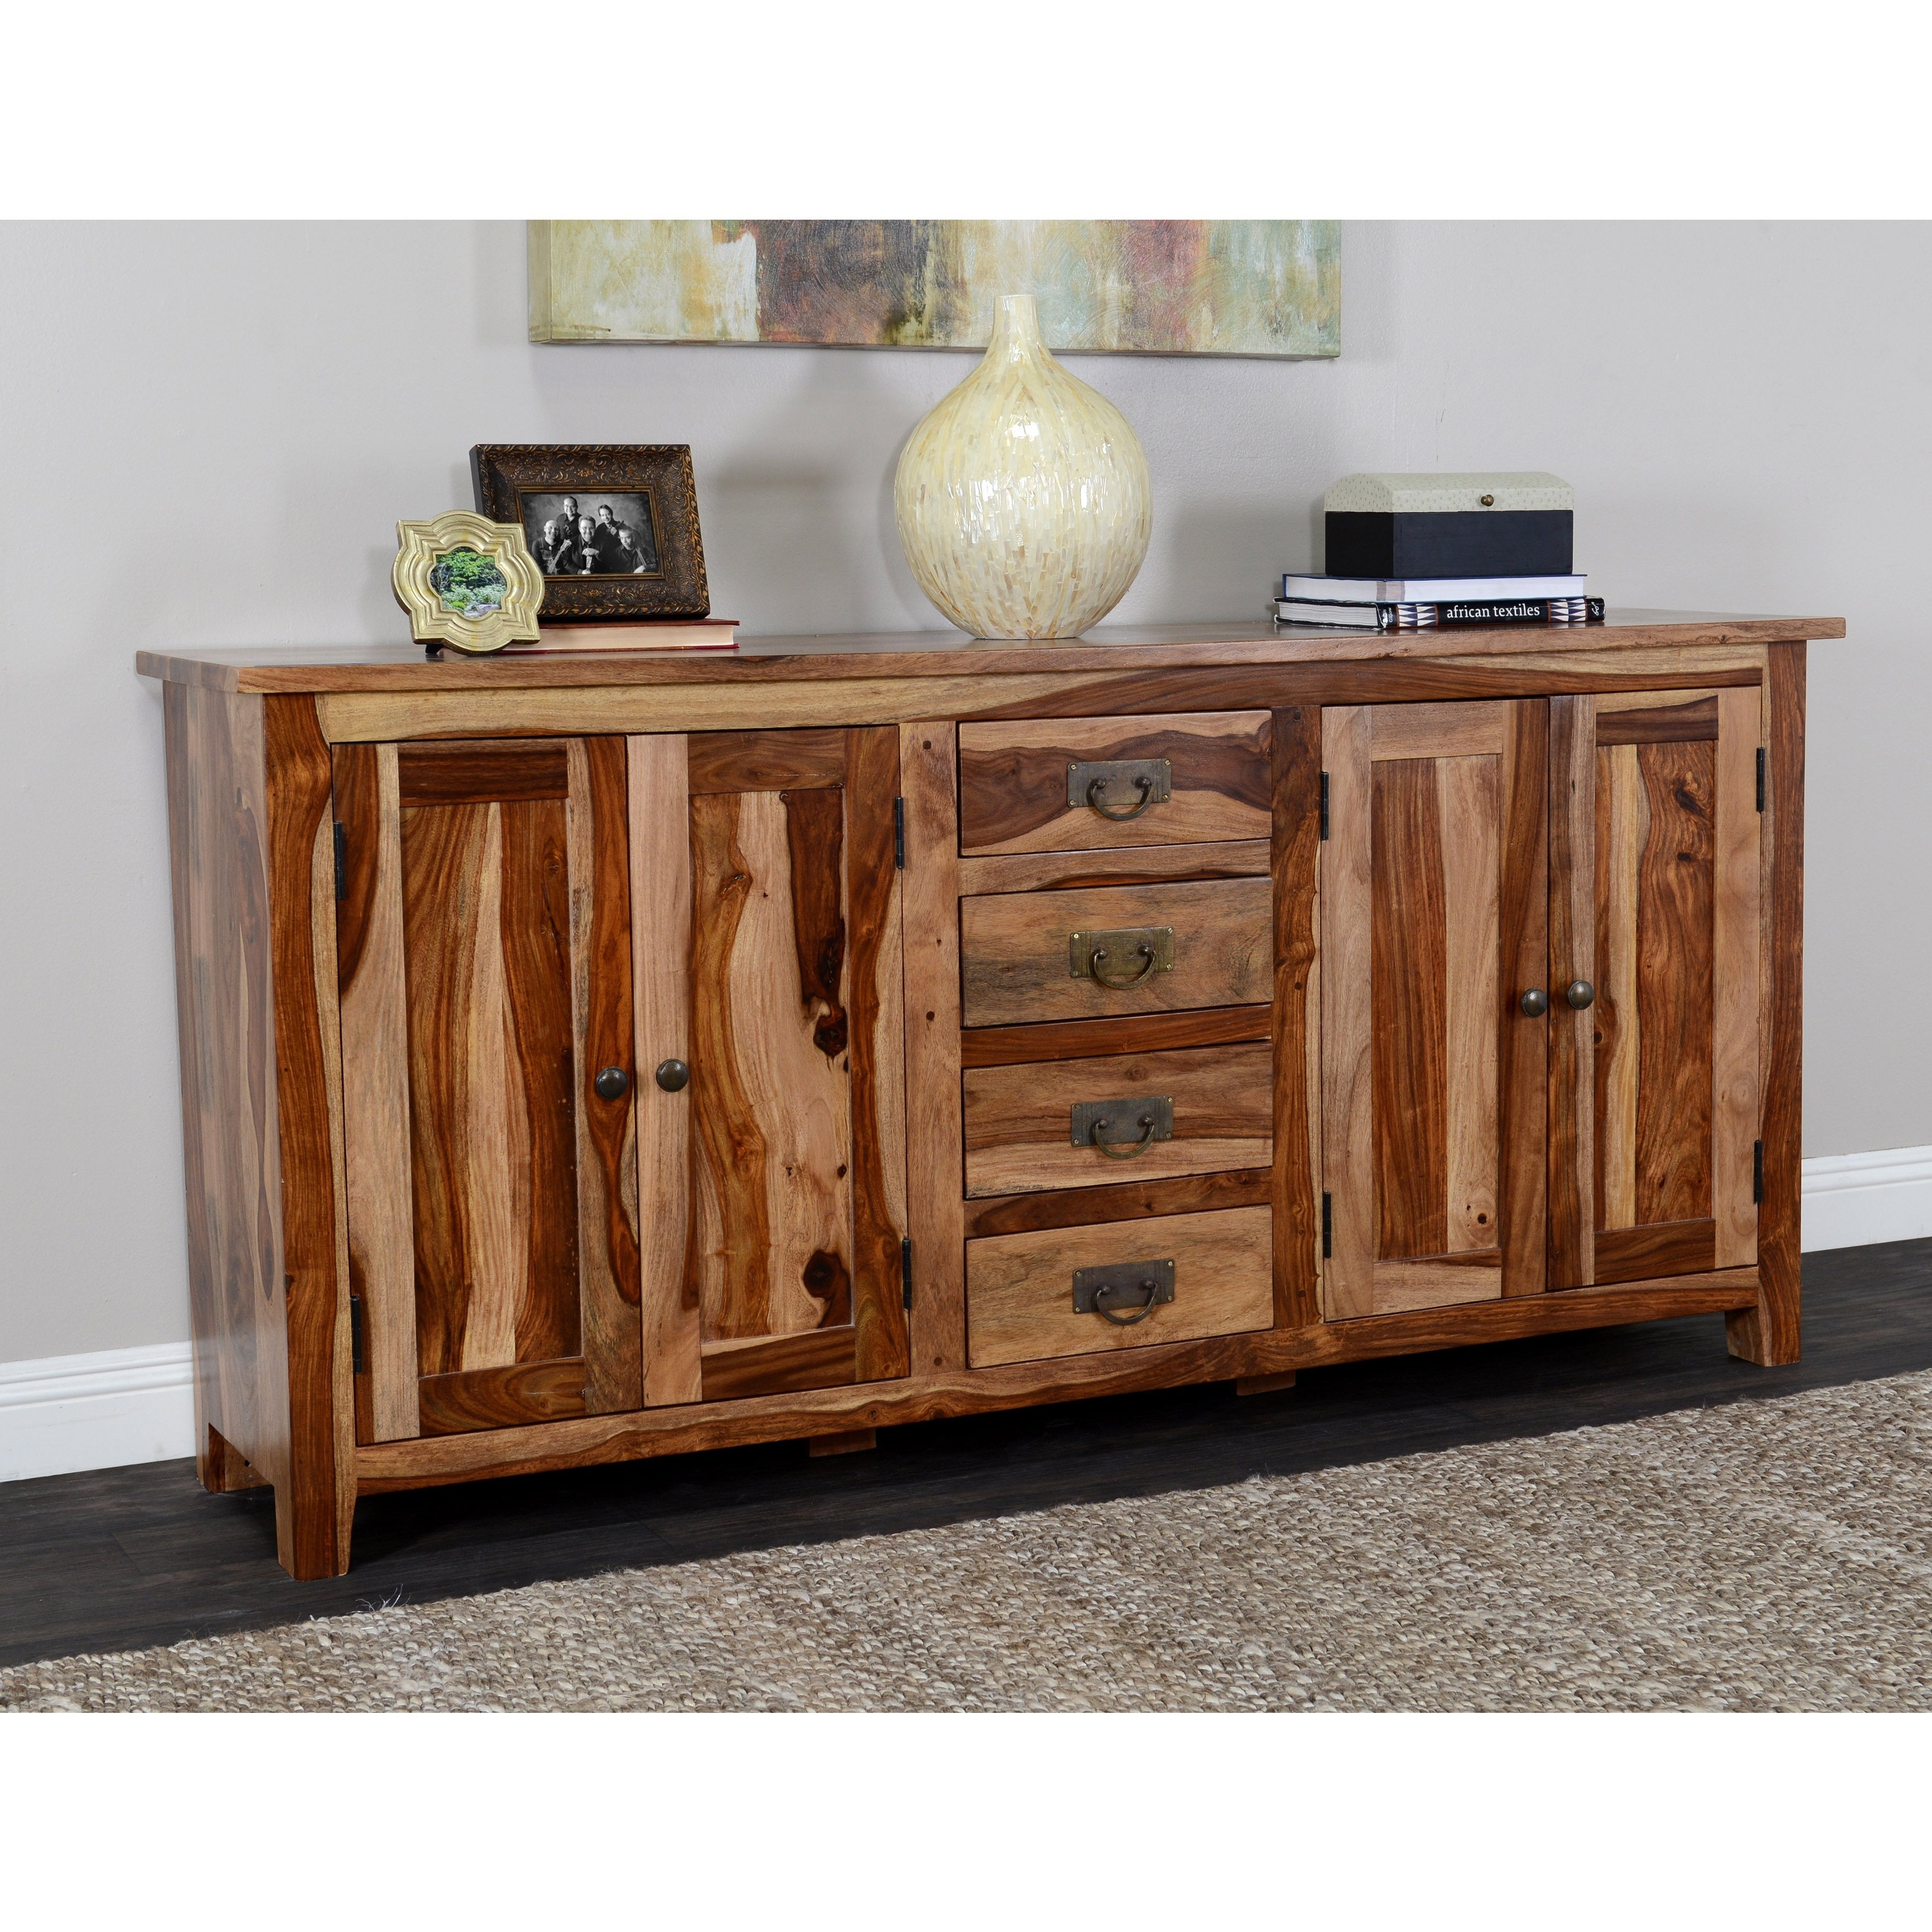 Shop Kosas Home Zabby 4 Drawer 4 Door Sideboard – Free Shipping Intended For 2018 Brown Chevron 4 Door Sideboards (#15 of 20)